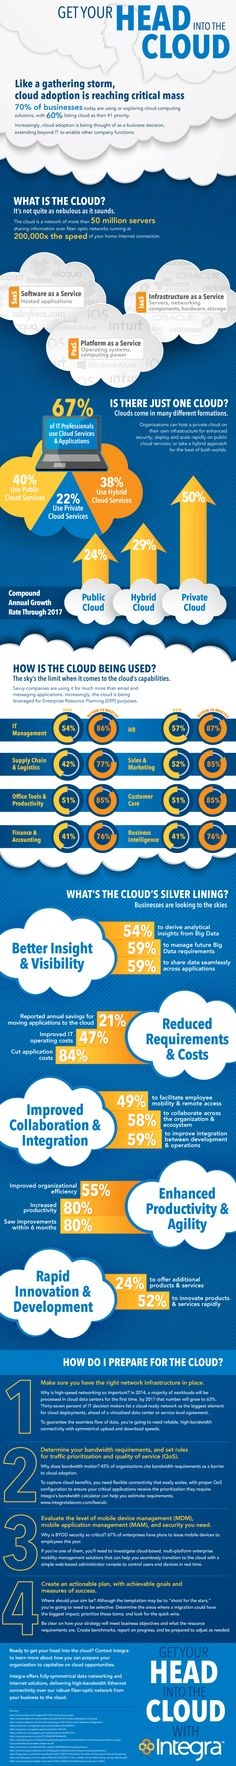 Get Your Head into the Cloud - Cloud Adoption [Infographic]